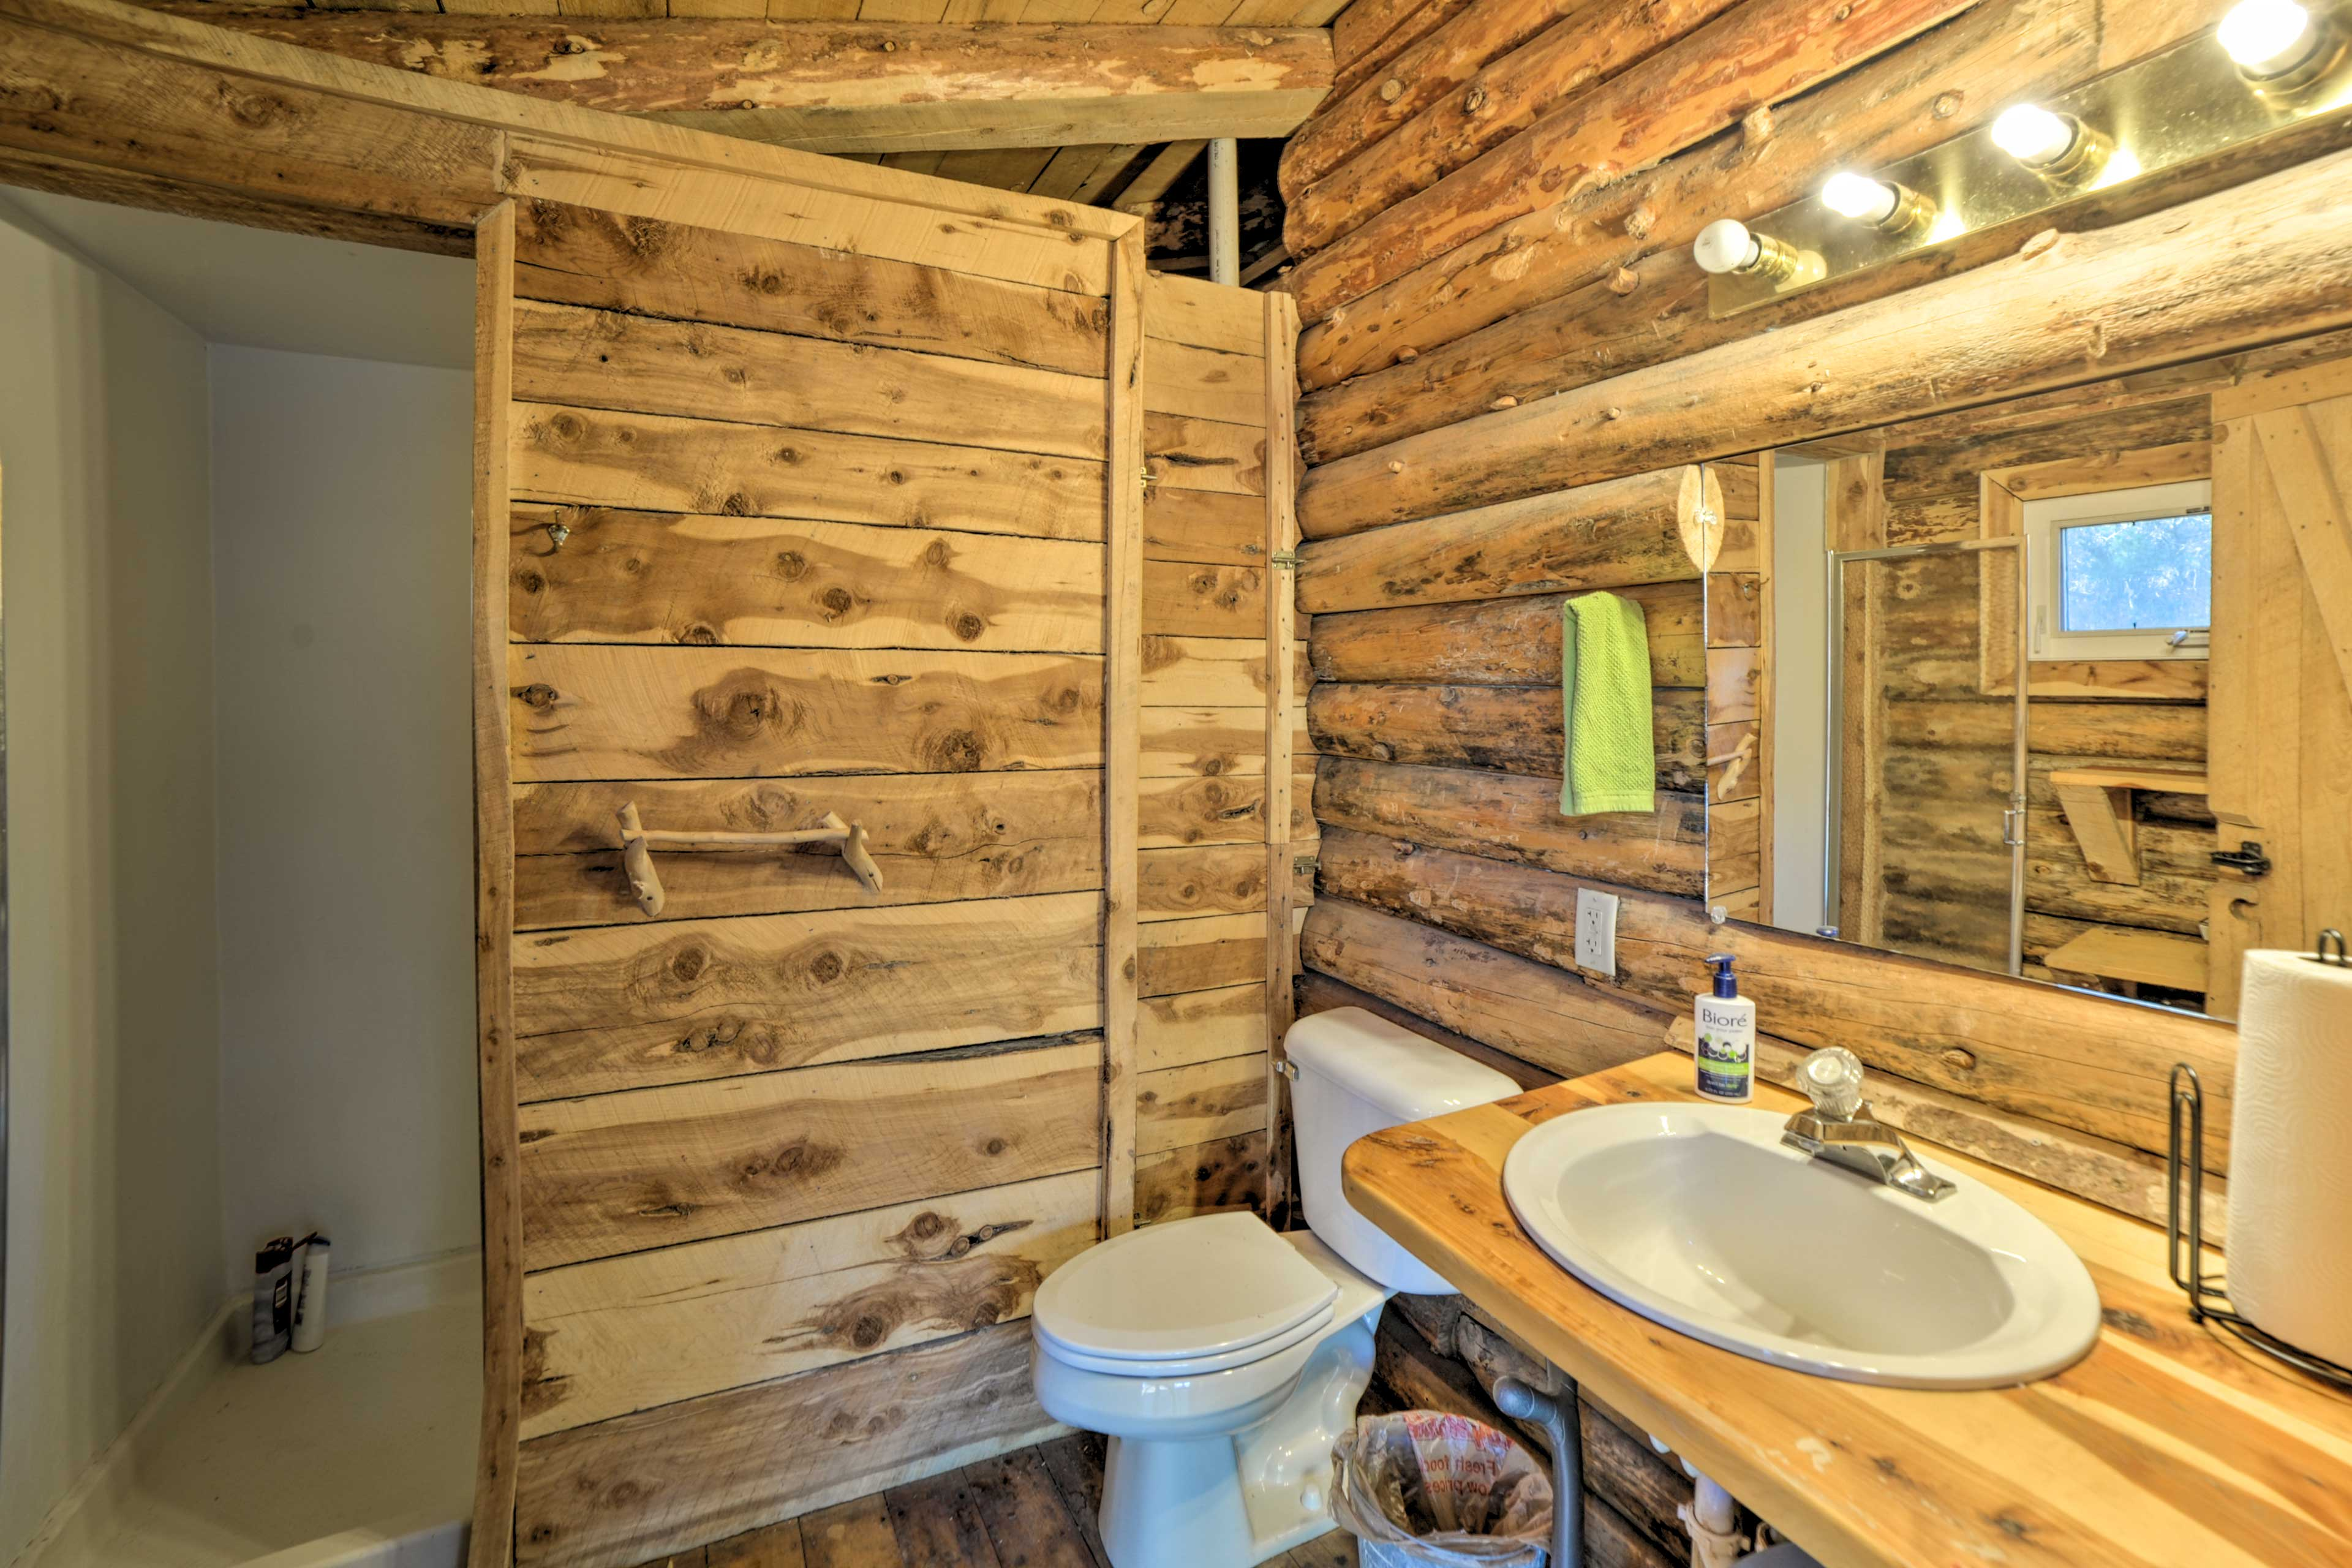 The bathroom is a full with a stand-up shower.